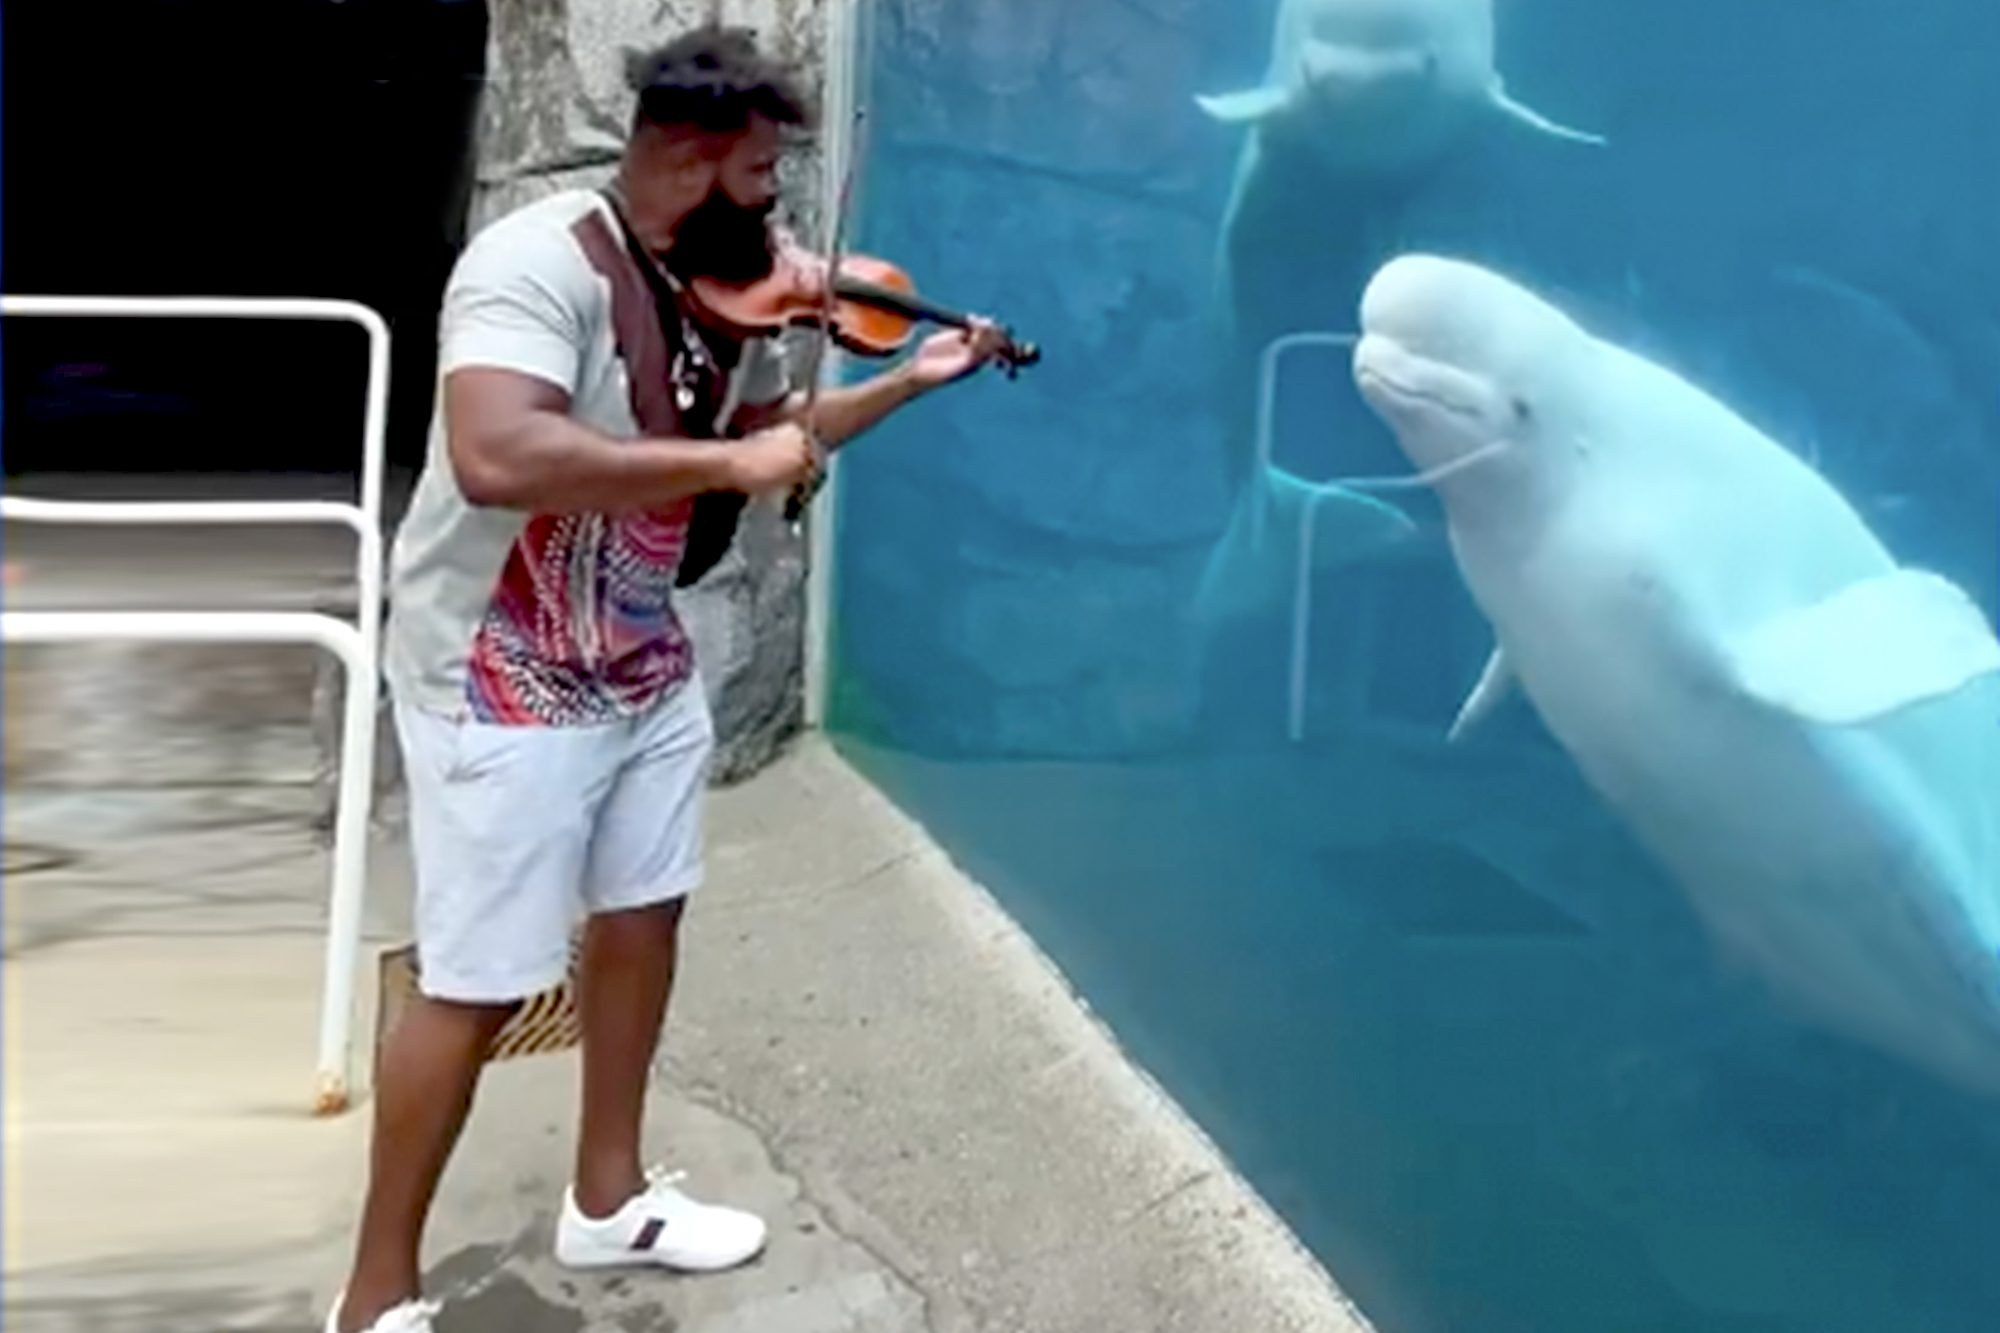 man plays violin in front of two white whales